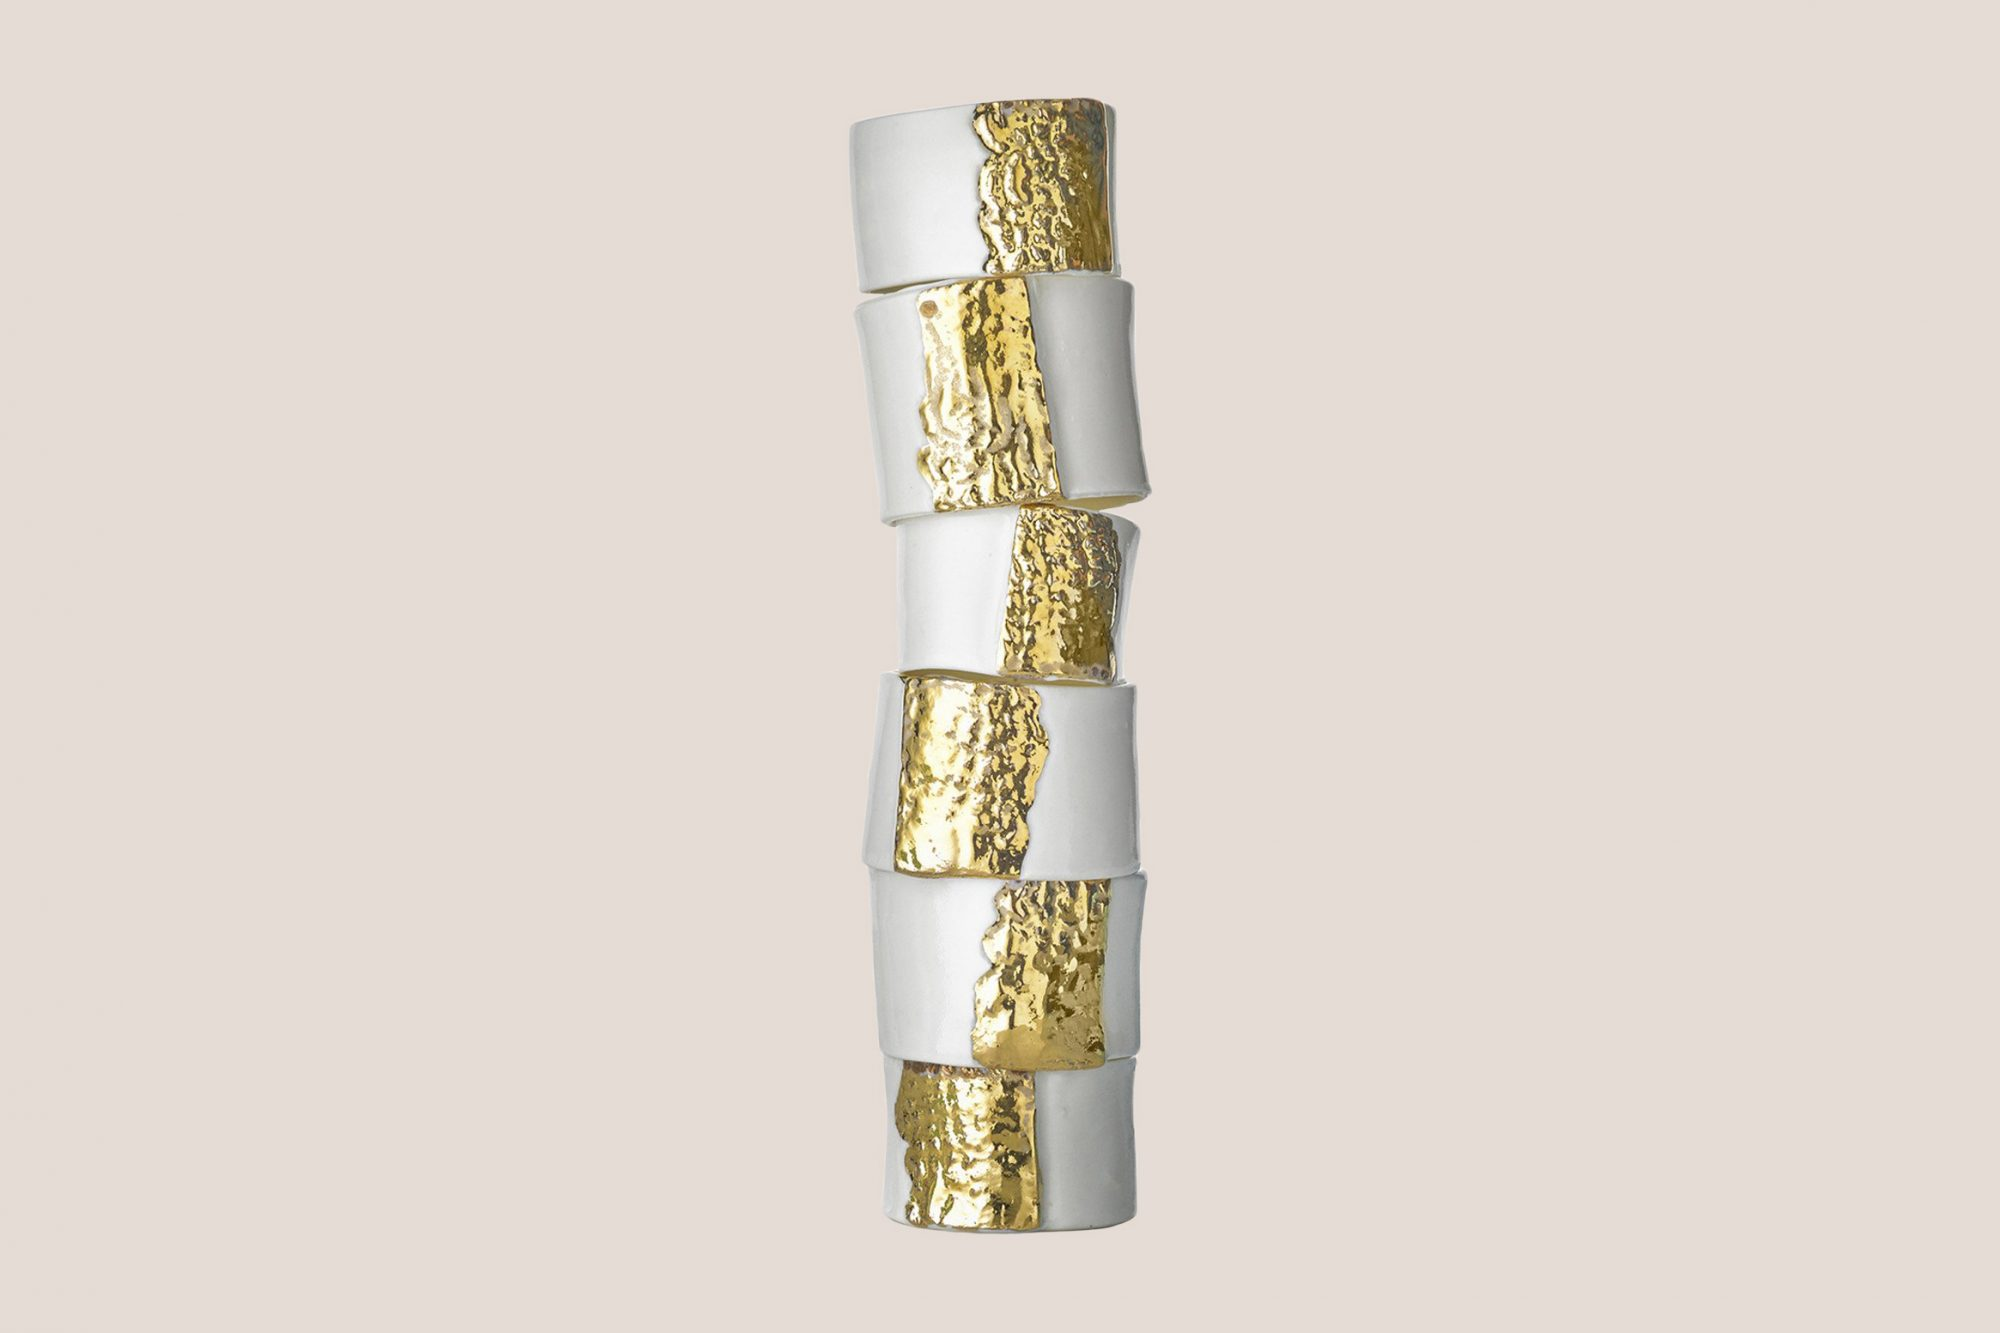 Summerill & Bishop Embossed Porcelain Napkin Rings in Gold